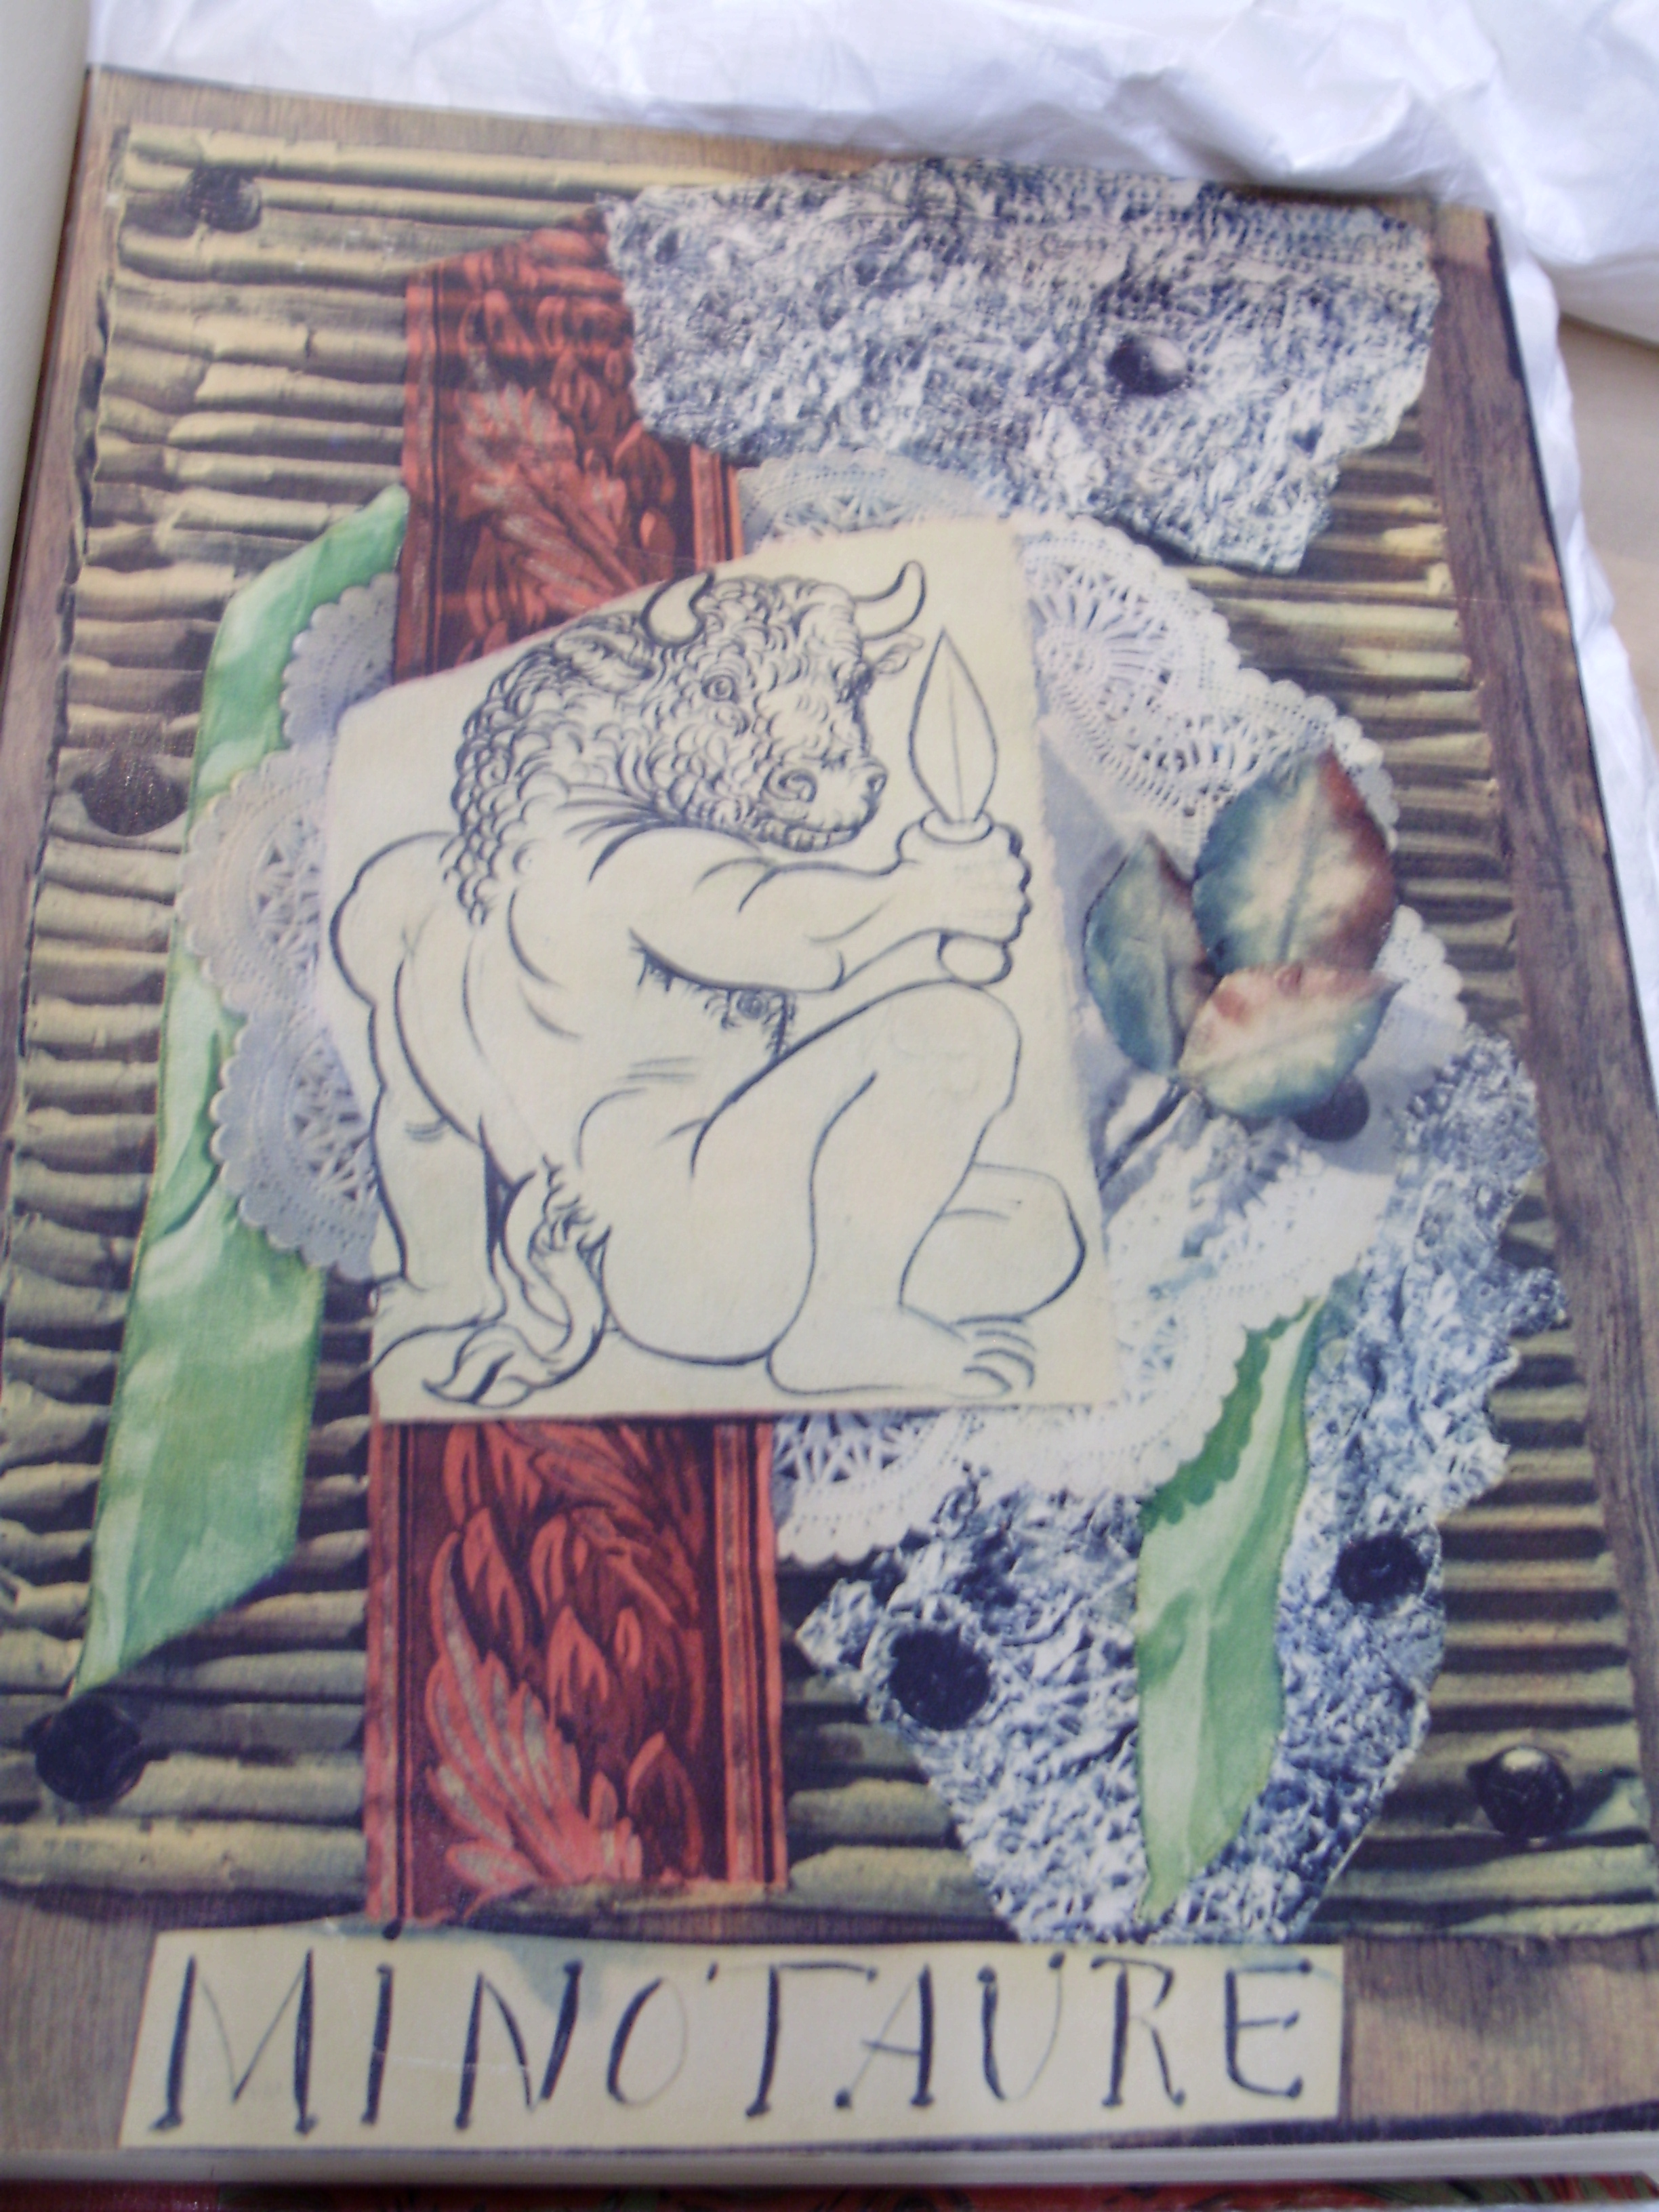 Image of the cover of the journal 'Minotaure' No. 1 (1933) found at the Courtauld Institute of Art.